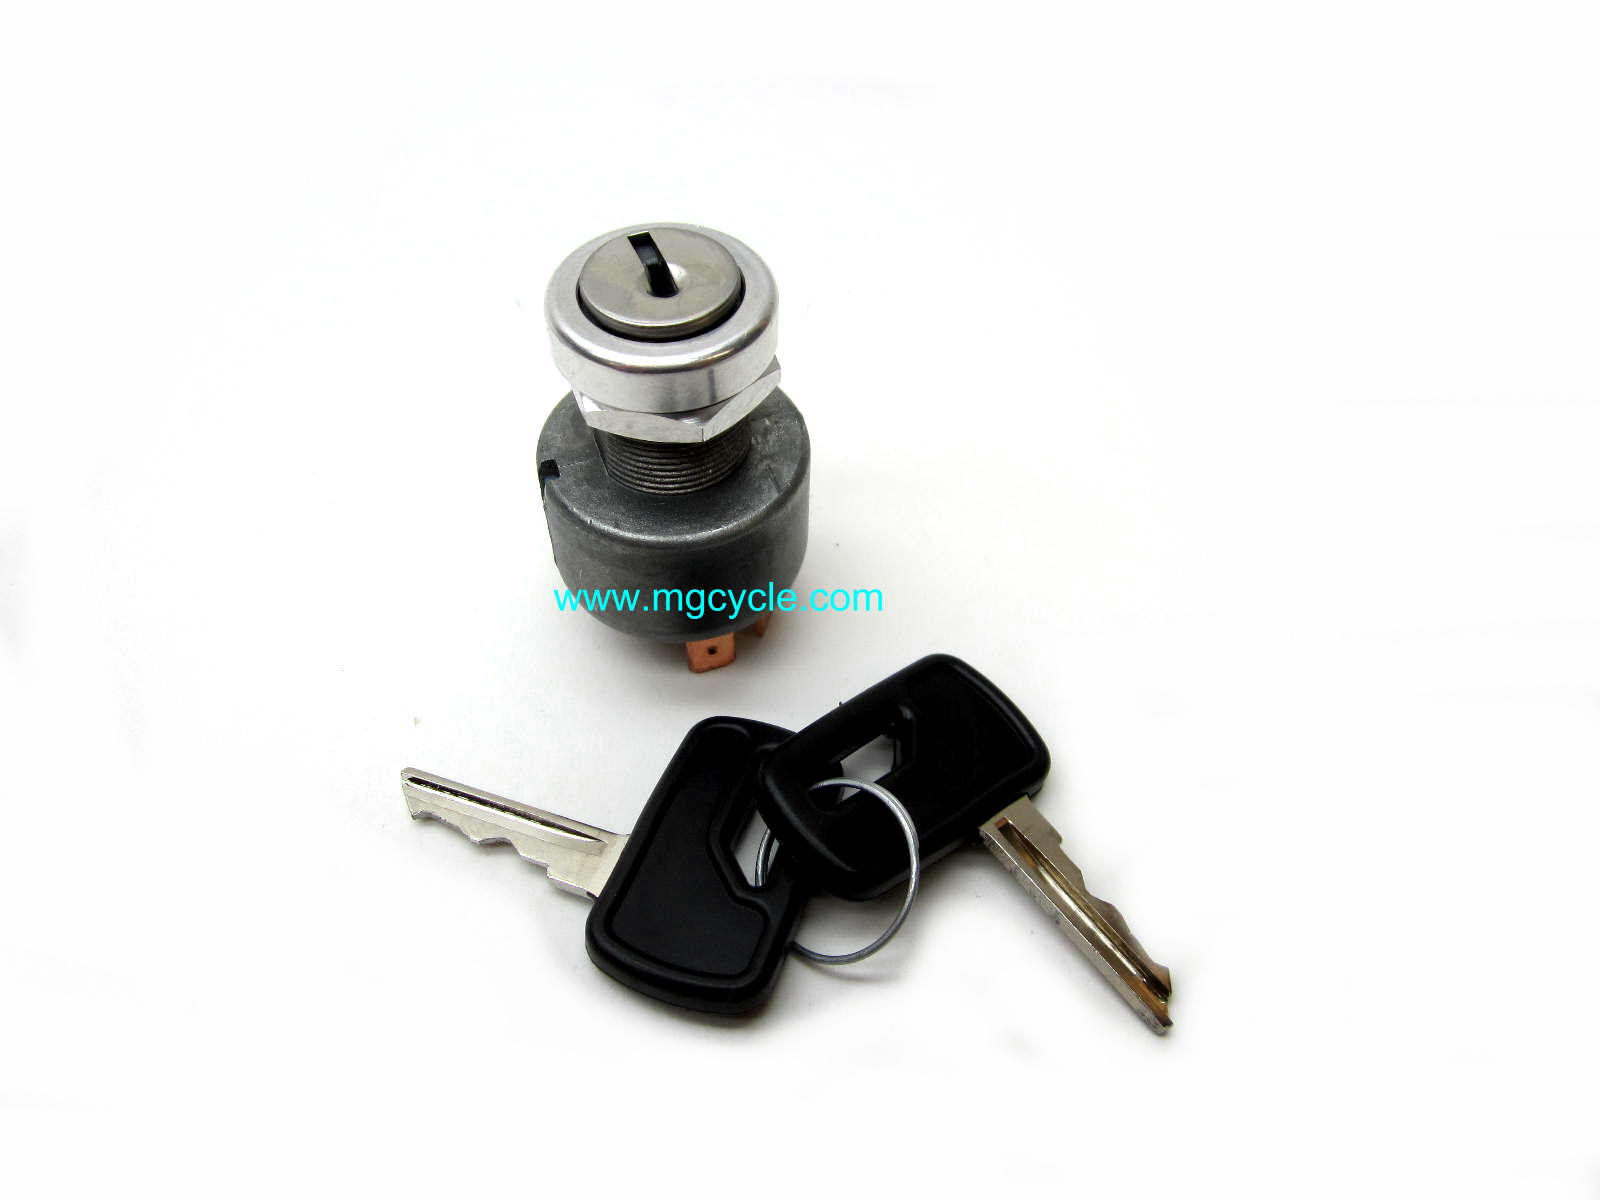 Alternate ignition switch, V700 Ambassador Eldorado 850GT